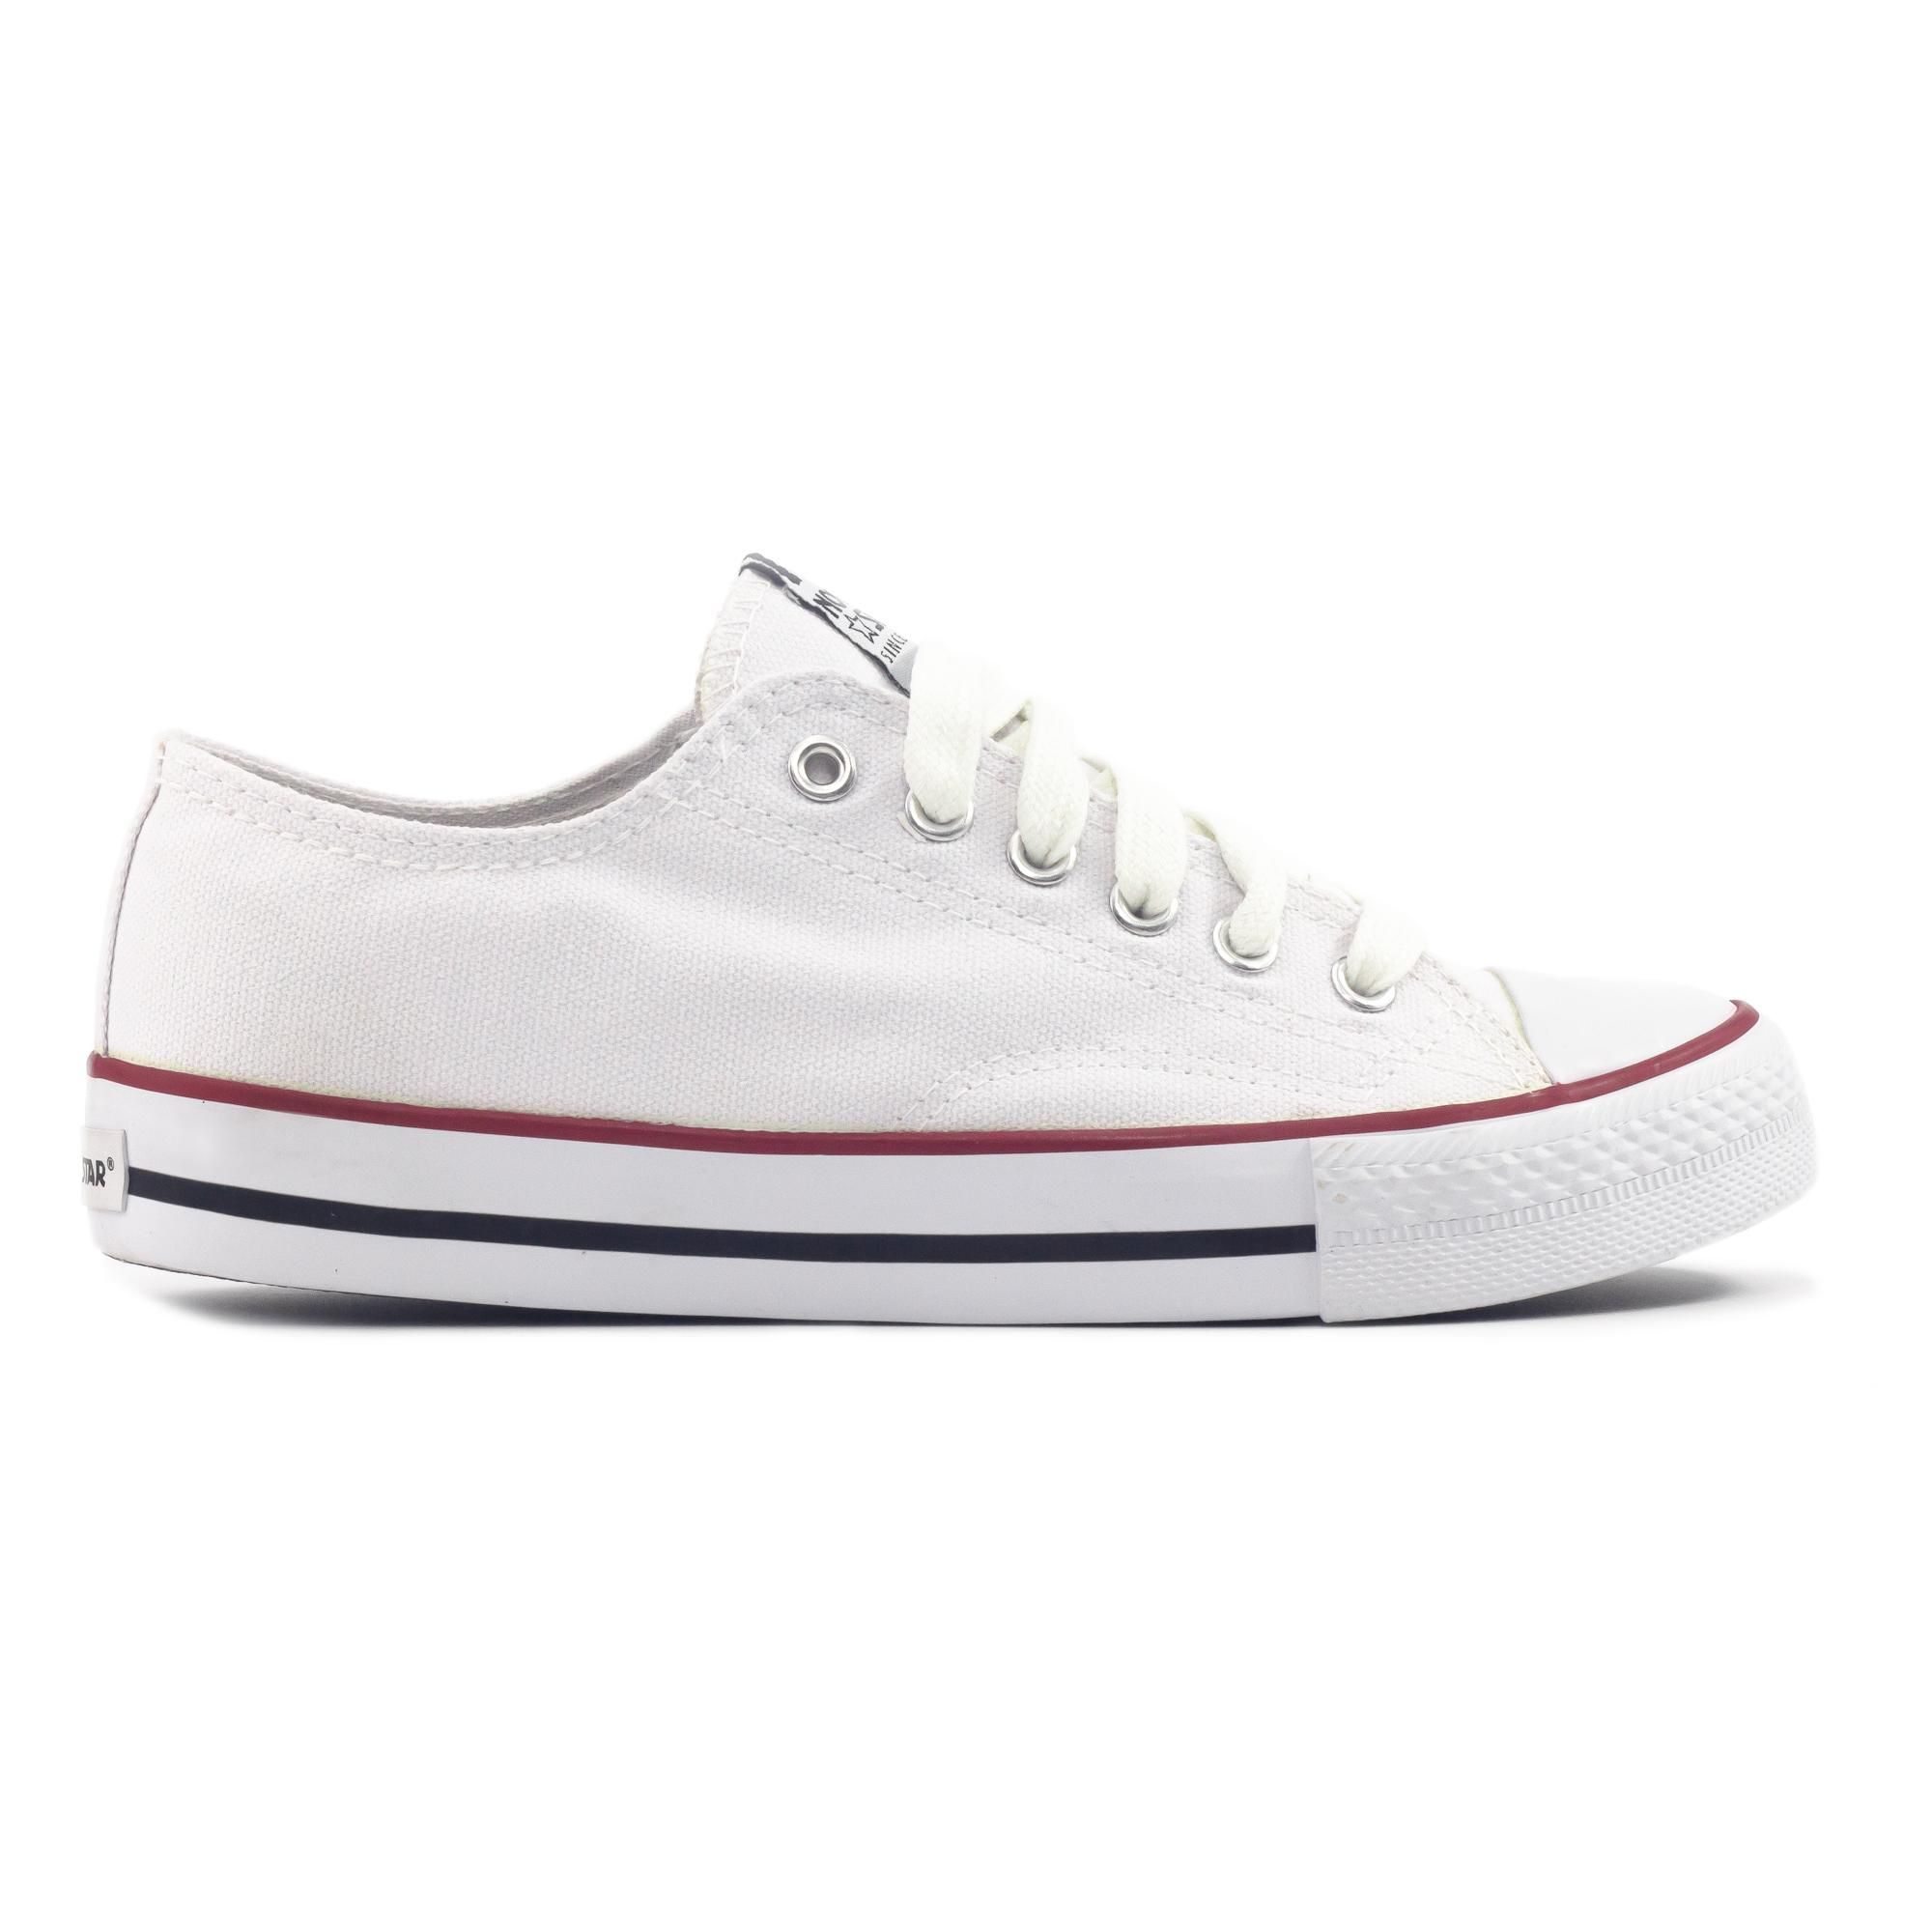 961967f9efb4 NORTH STAR YOUTH SCHOOL SHOES WHITE 5891192